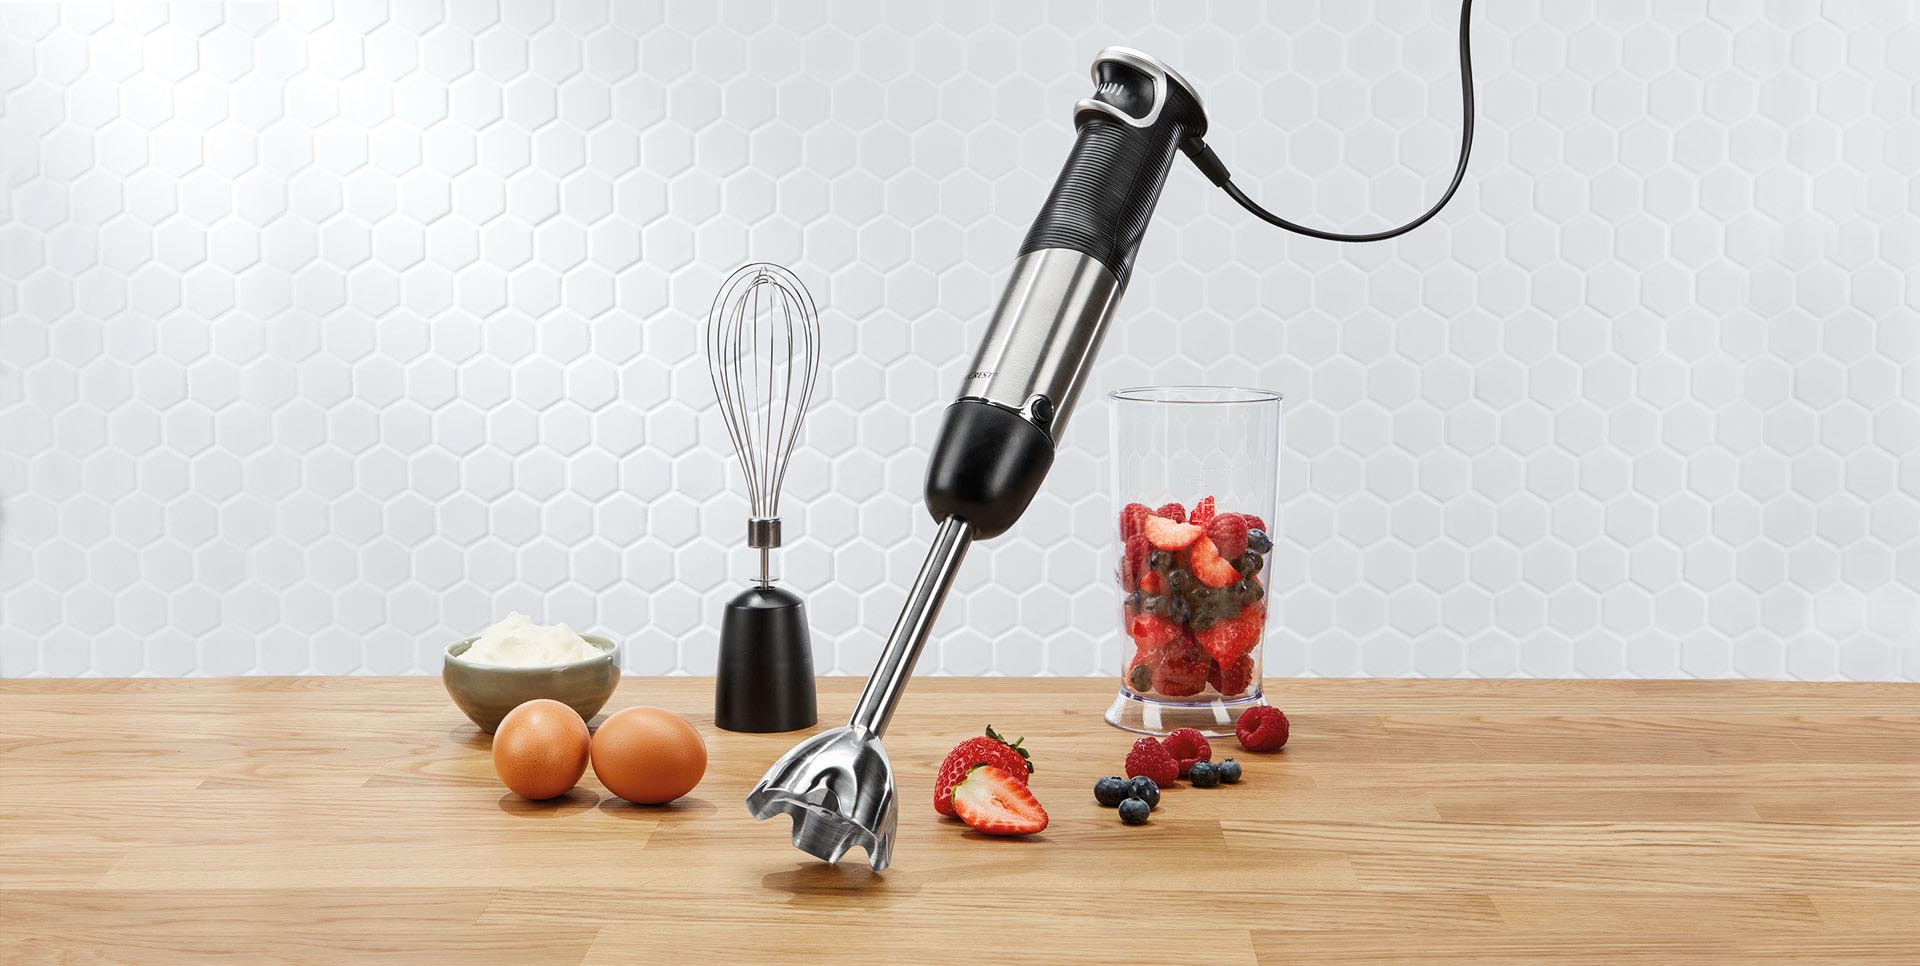 Silvercrest Lidl Opiniones Is The Lidl Silvercrest Hand Blender Any Good Which News